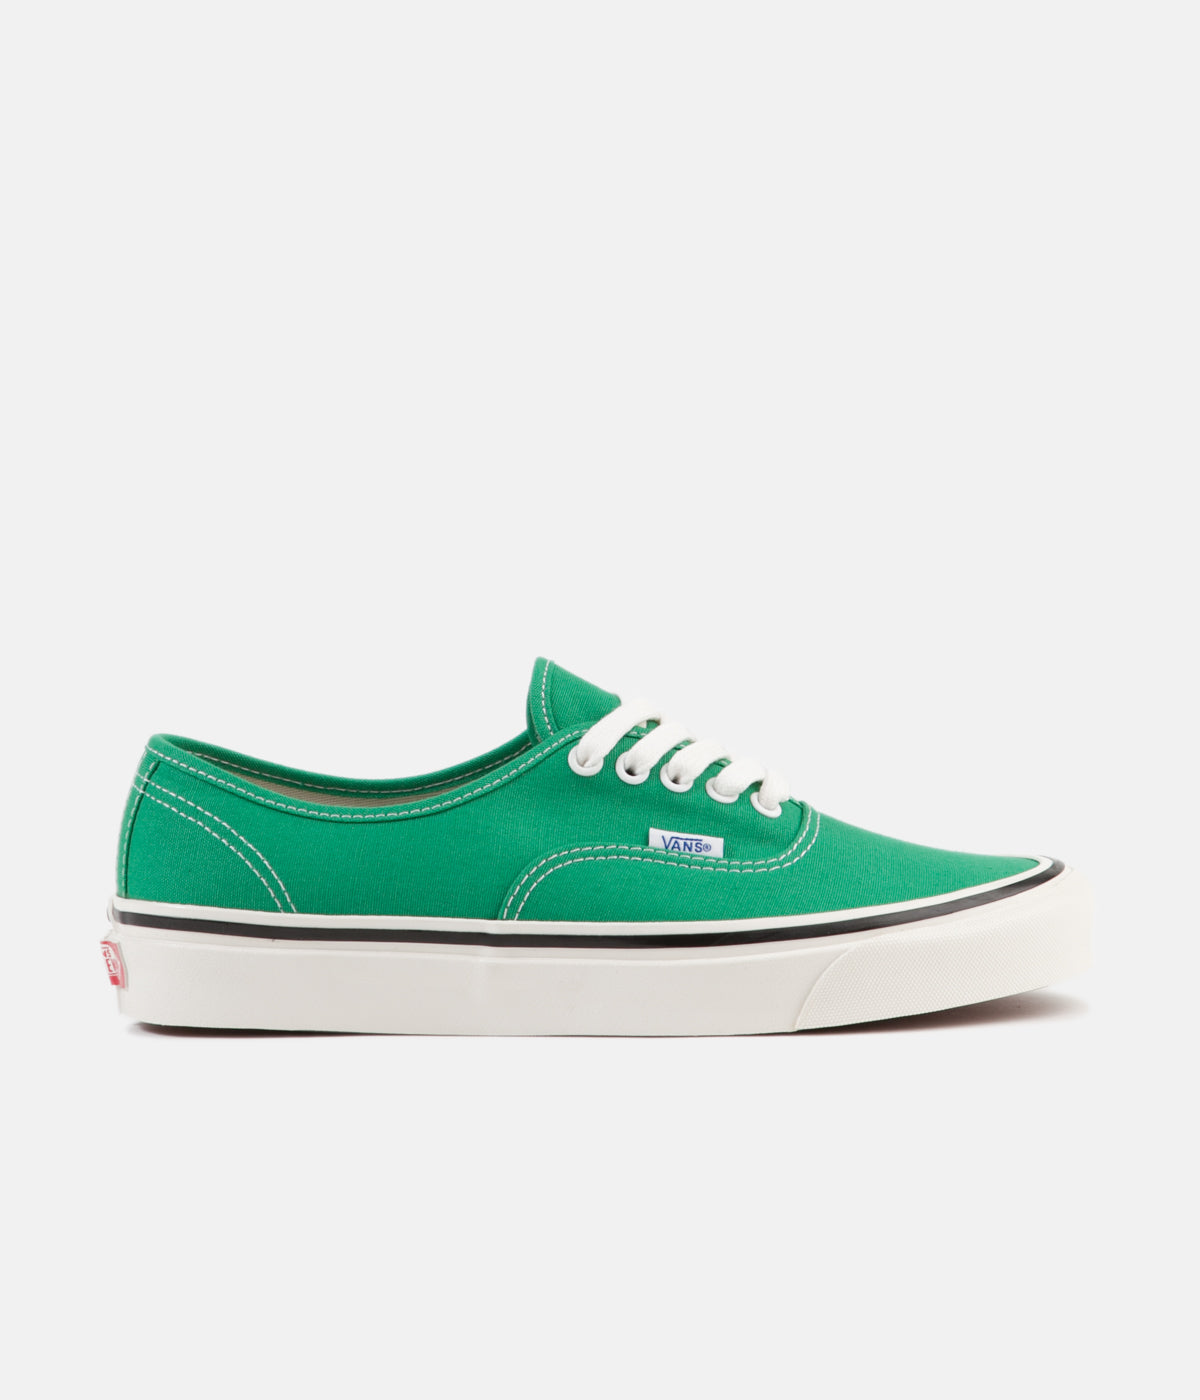 Vans Authentic 44 DX Anaheim Factory Shoes - OG Emerald Green